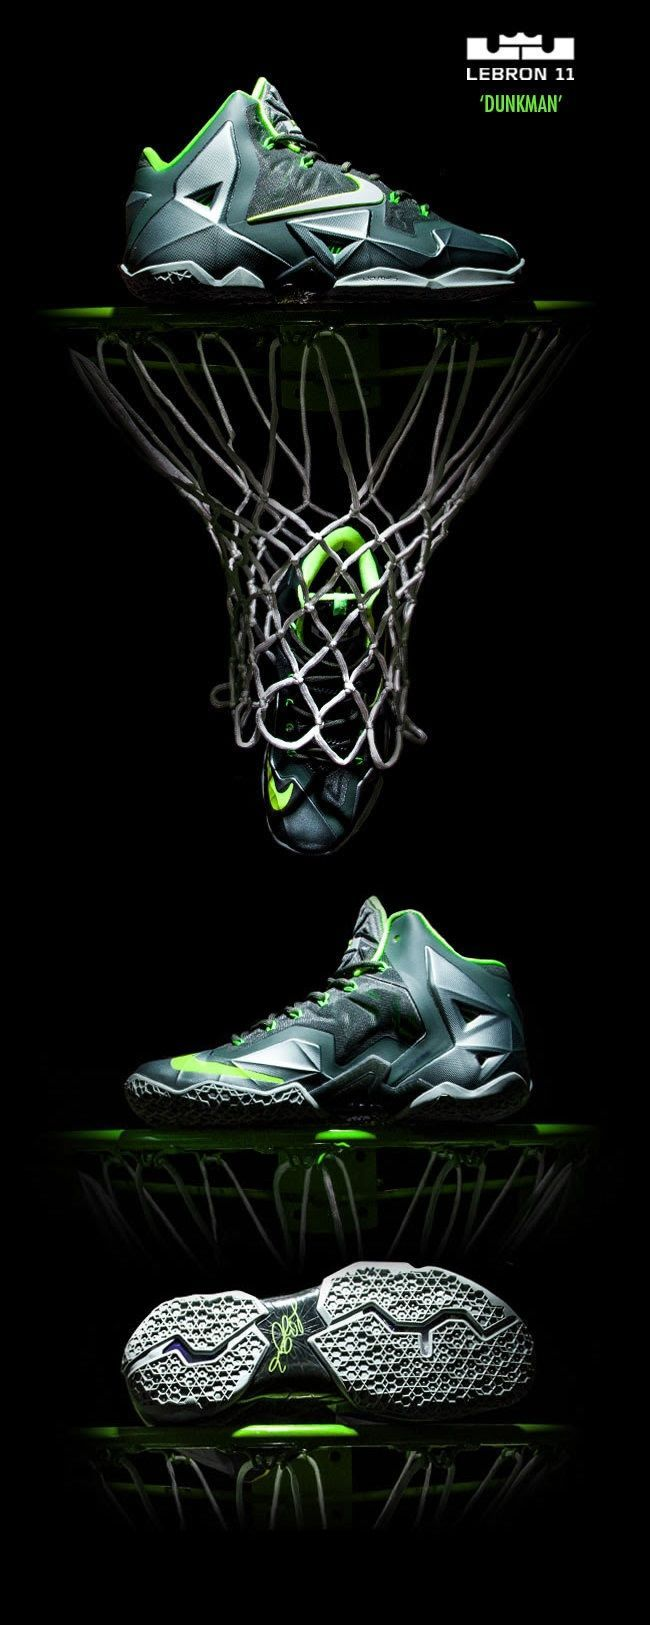 Nike Lebron 11 'Dunkman' New Hip Hop Beats Uploaded EVERY SINGLE DAY http://www.kidDyno.com